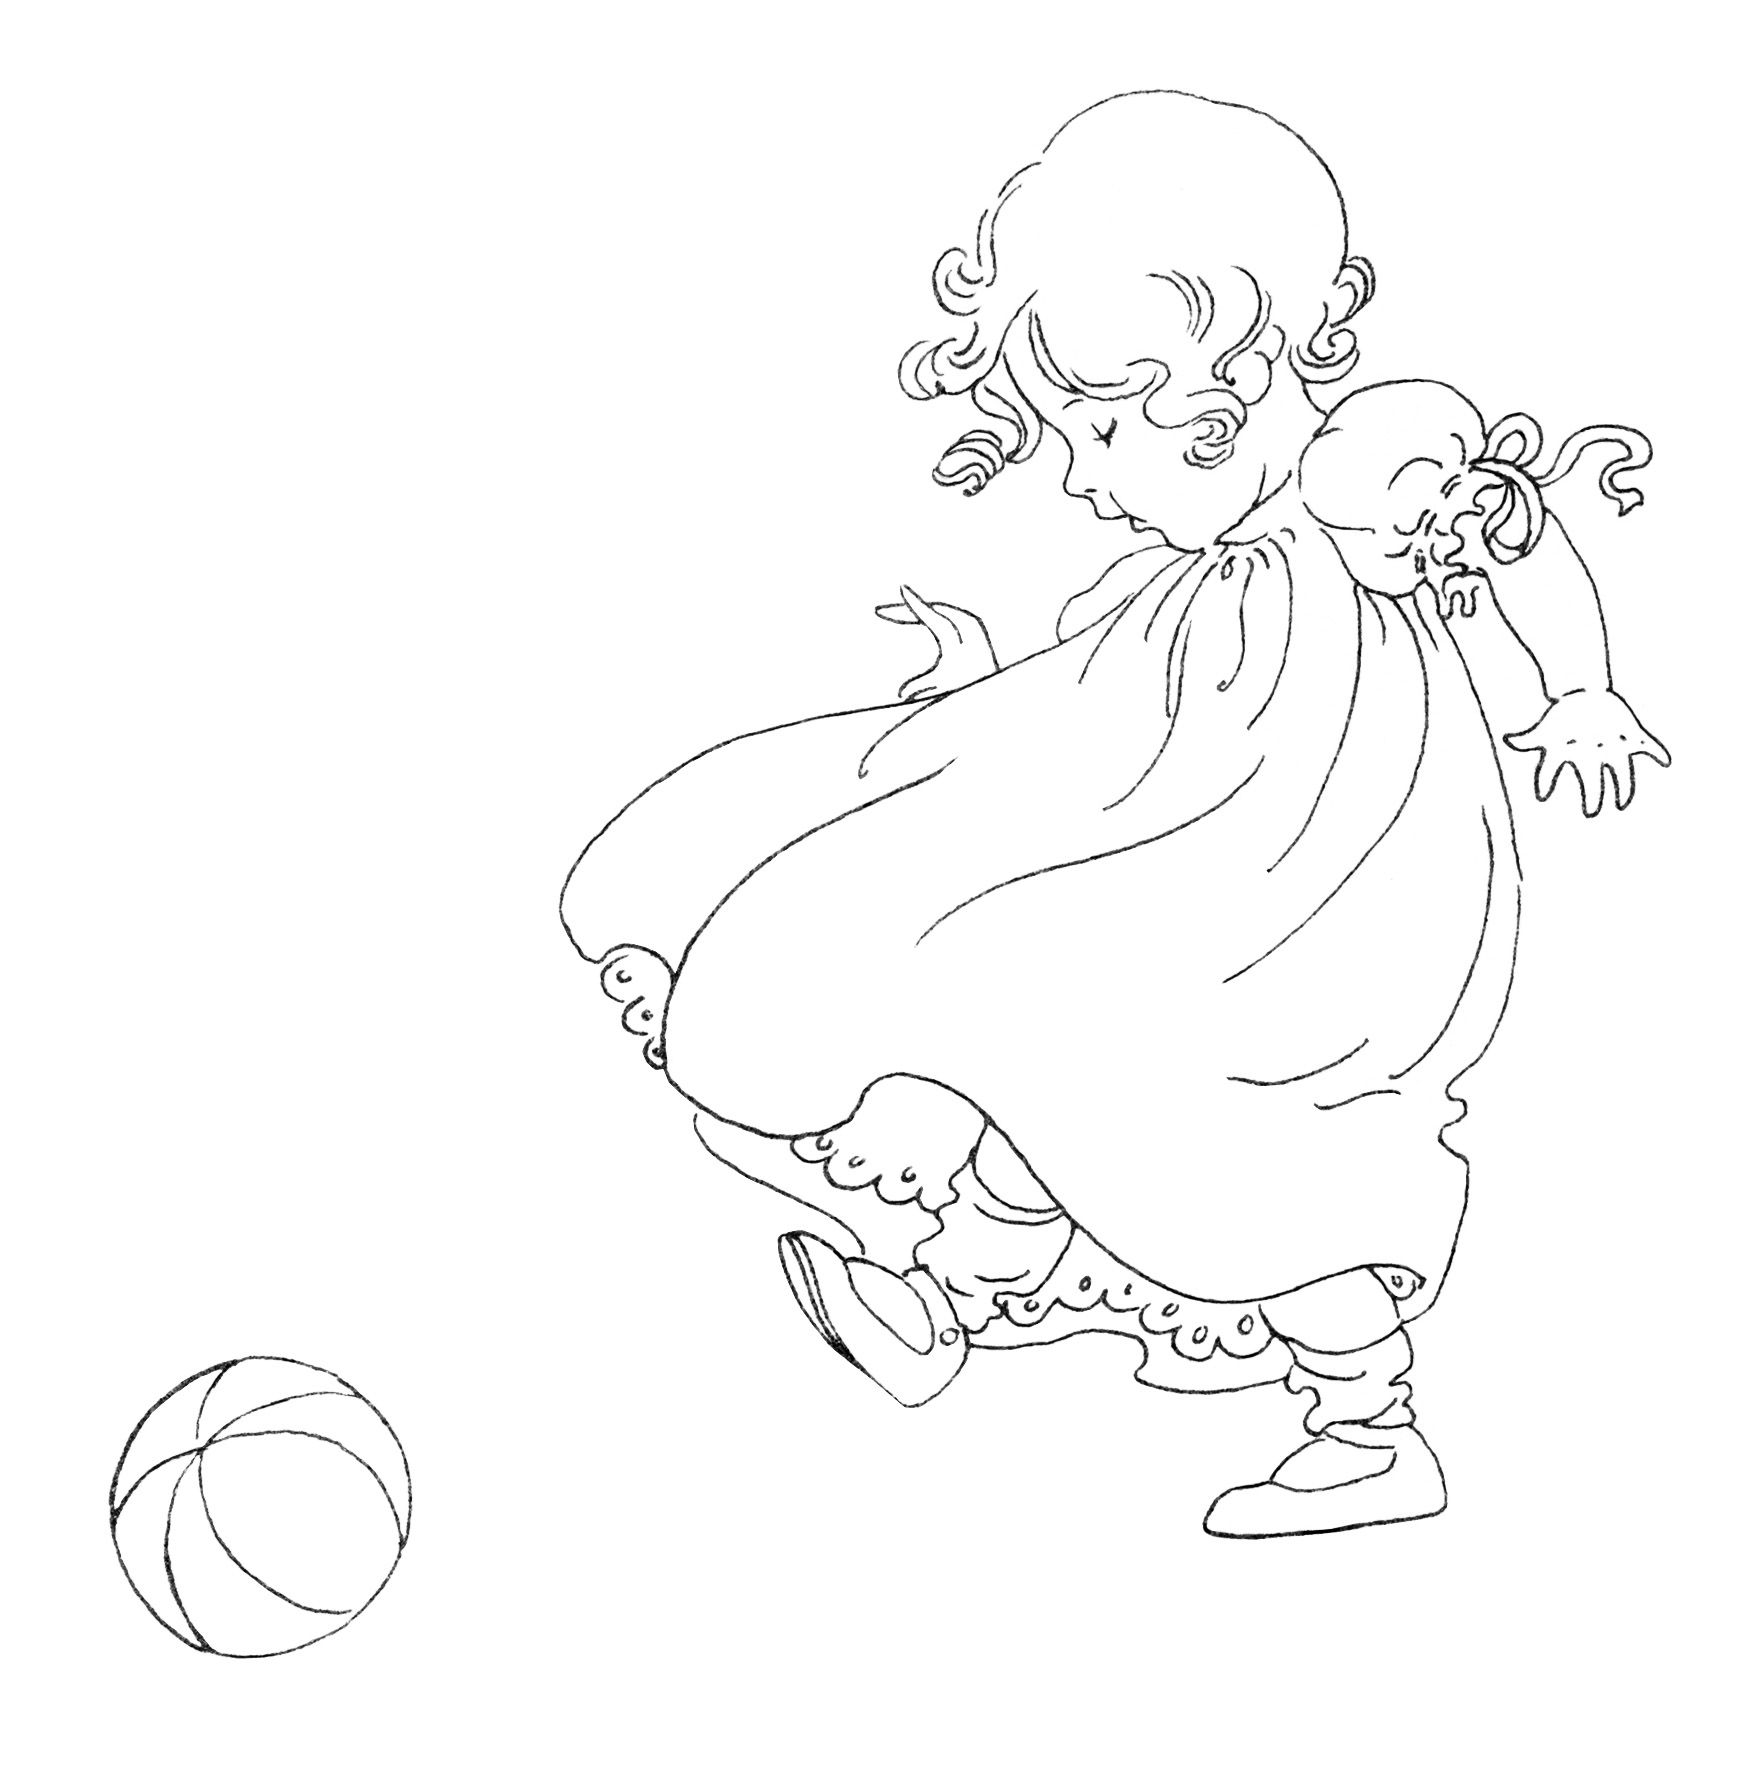 Girl Kicking Ball Vintage Baby Clip Art Black And White Clipart Free Child Image Antique